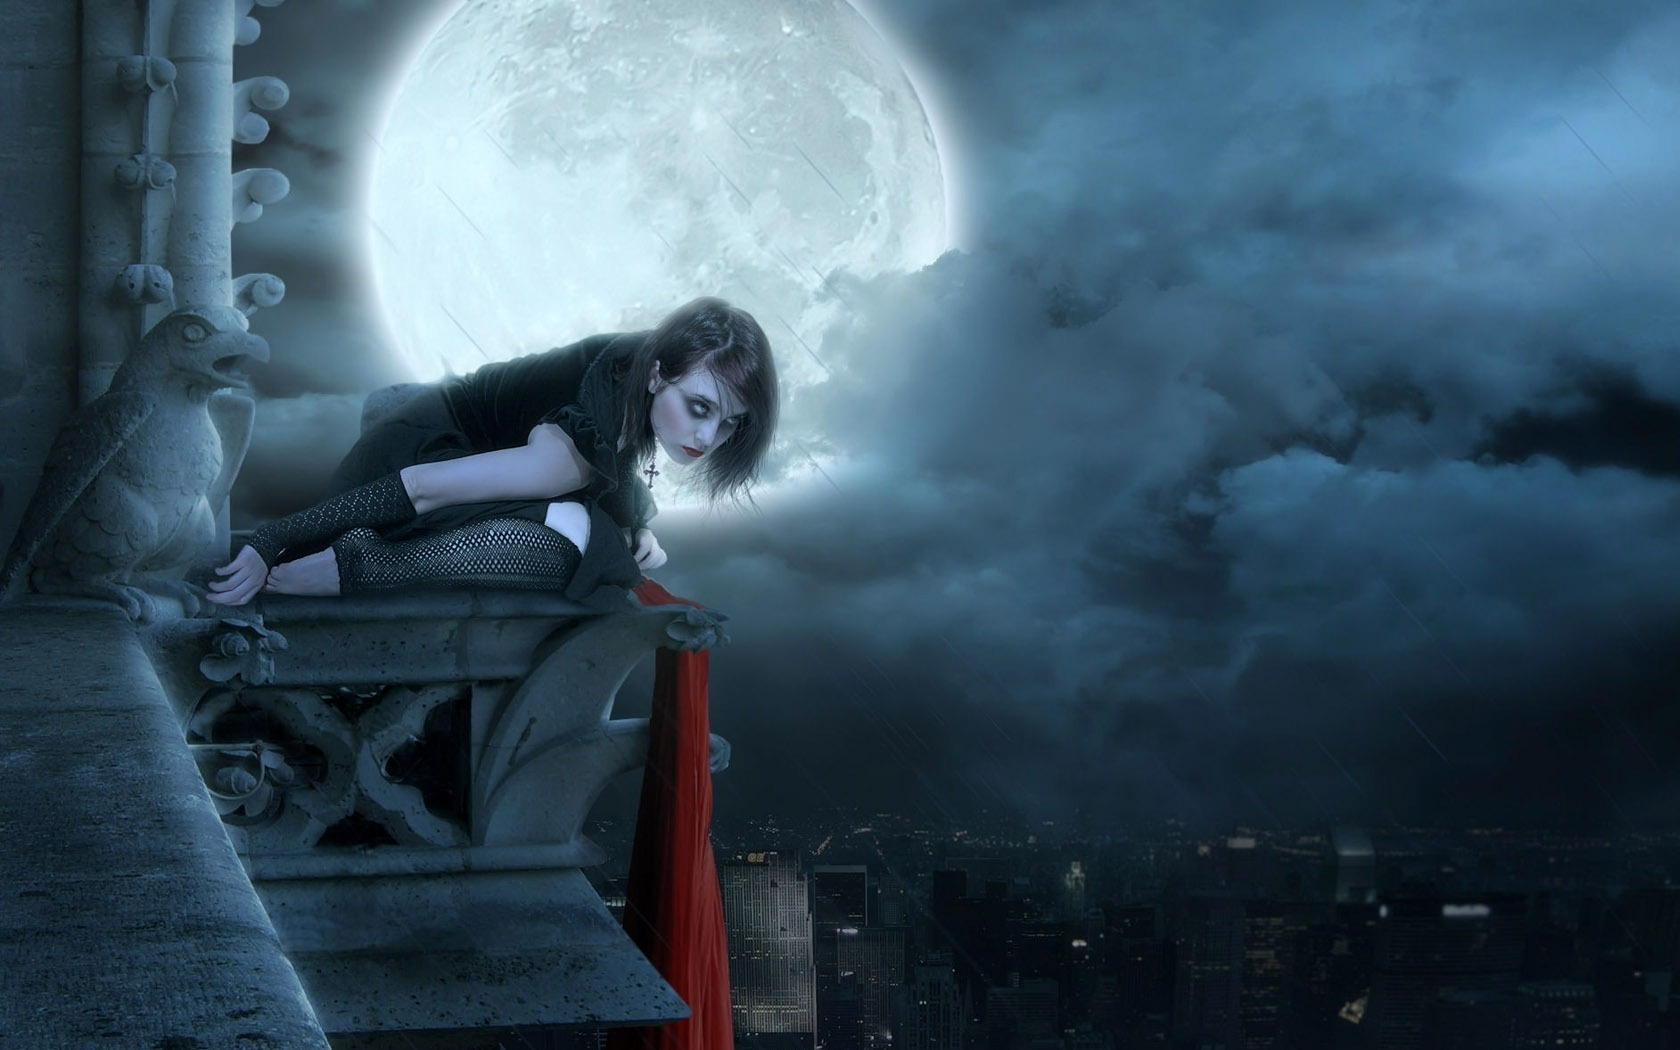 Vampire Wallpaper and Background Image | 1680x1050 | ID:186010 - Wallpaper Abyss